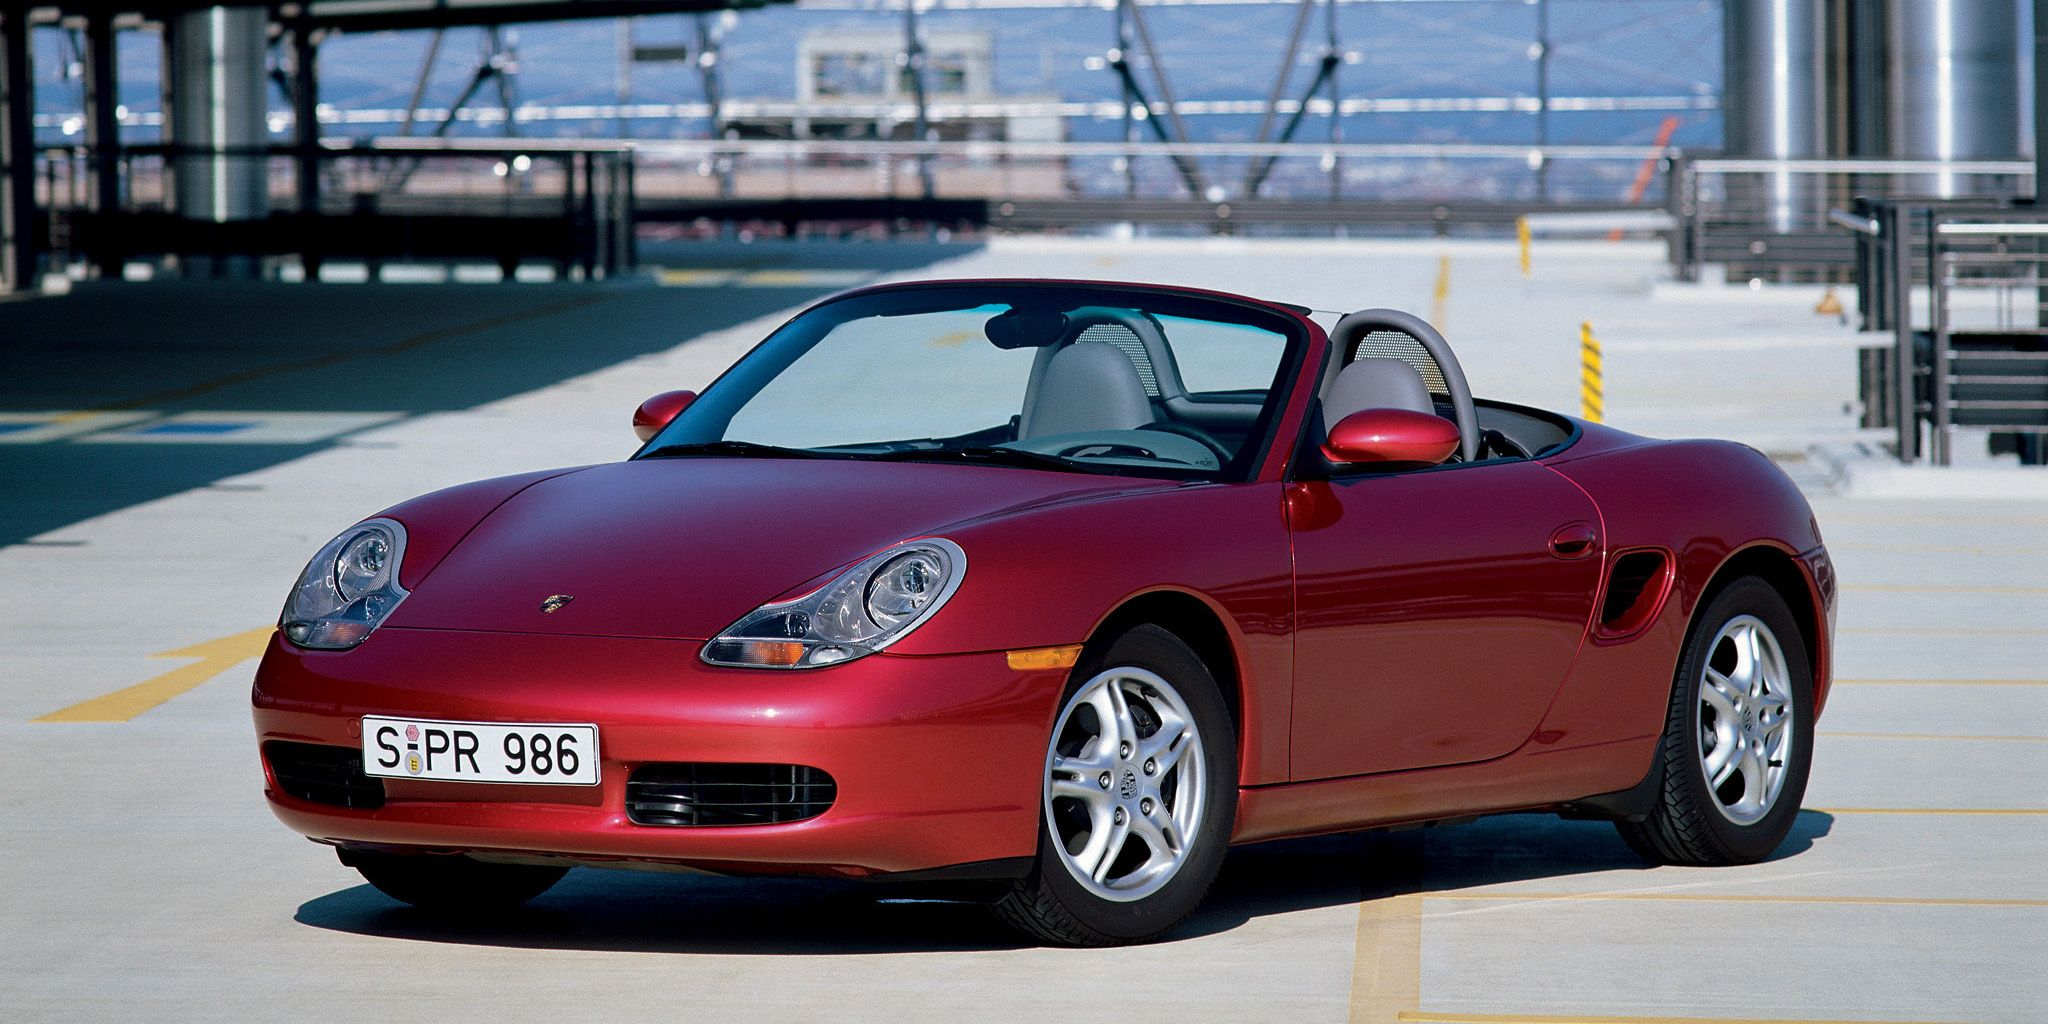 Porsche first introduced the Boxster in 1996, and it is the car that is credited with the success of pulling Porsche out of the money-losing days of that decade.